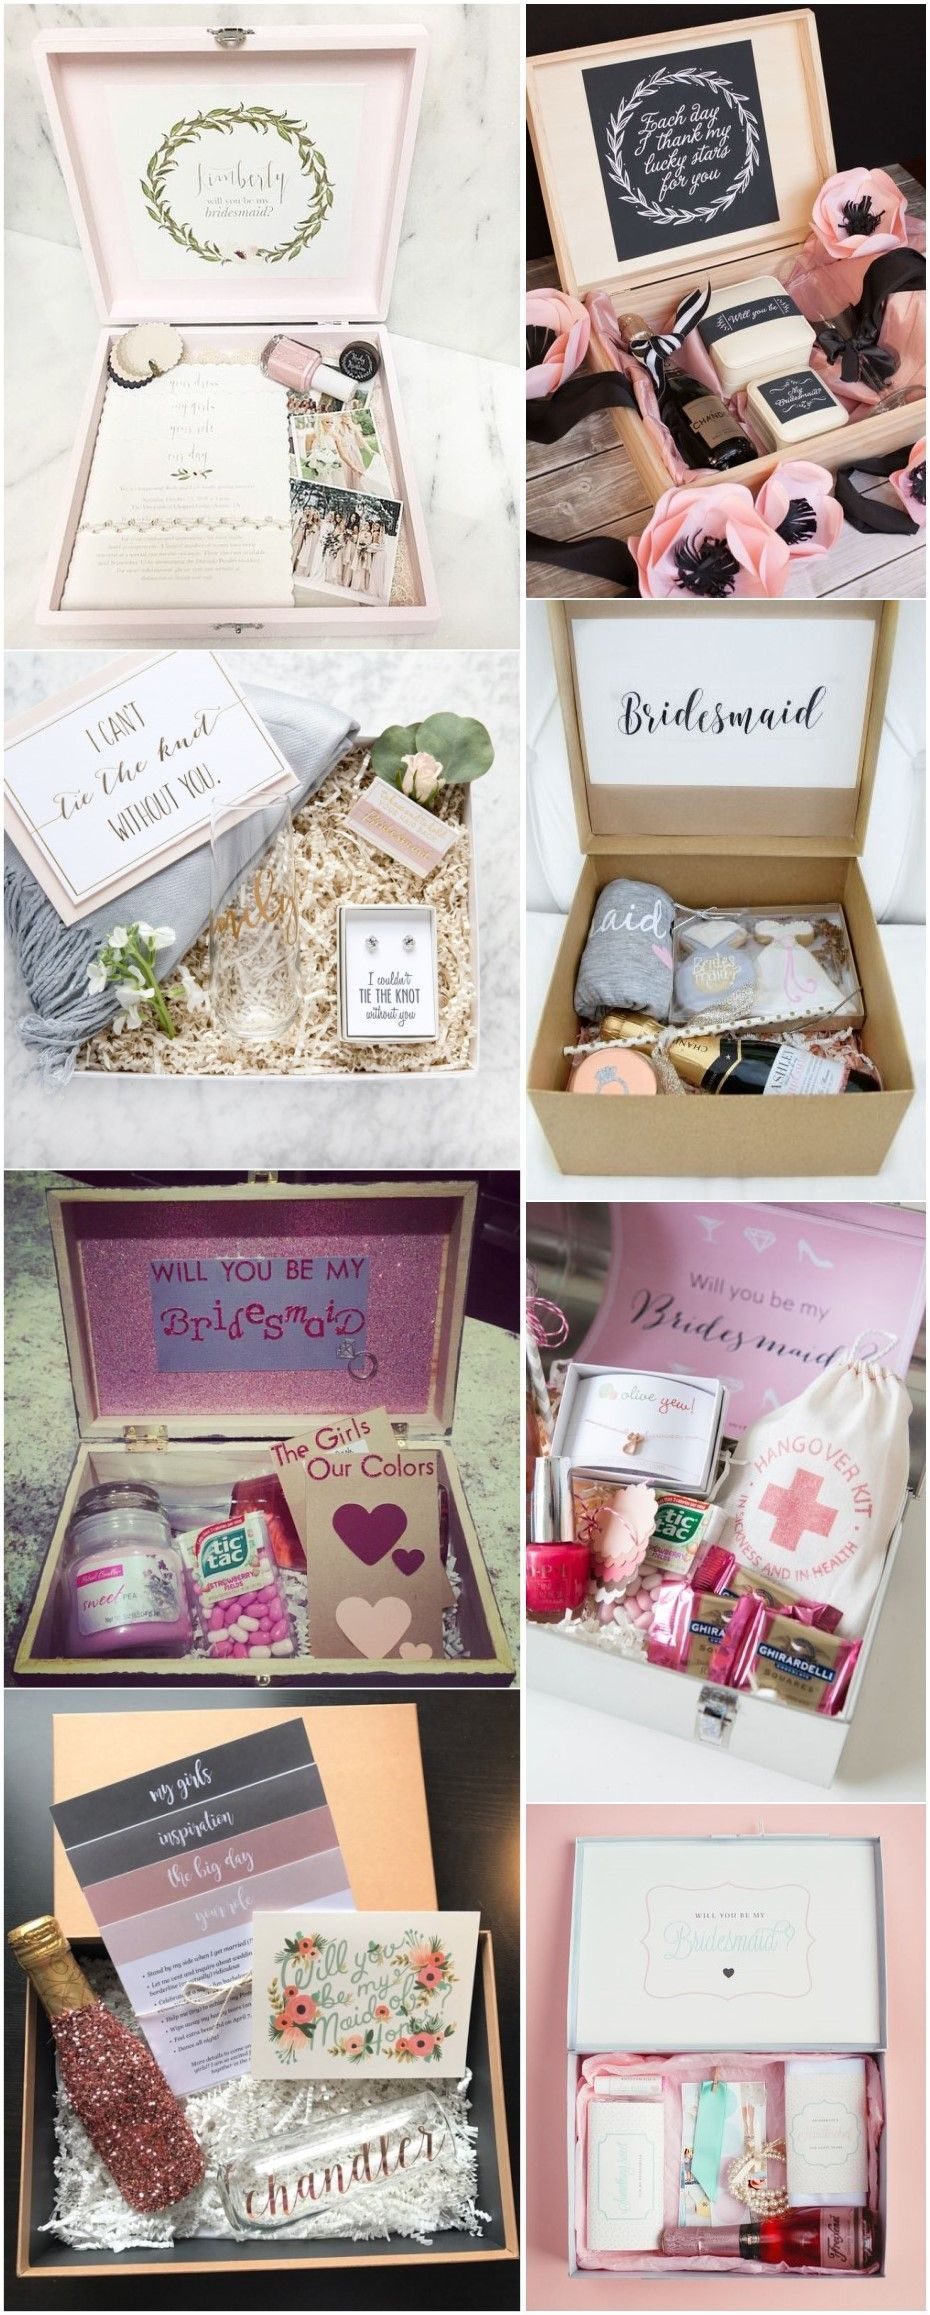 Homemade wedding decoration ideas  Will You Be My Bridesmaid